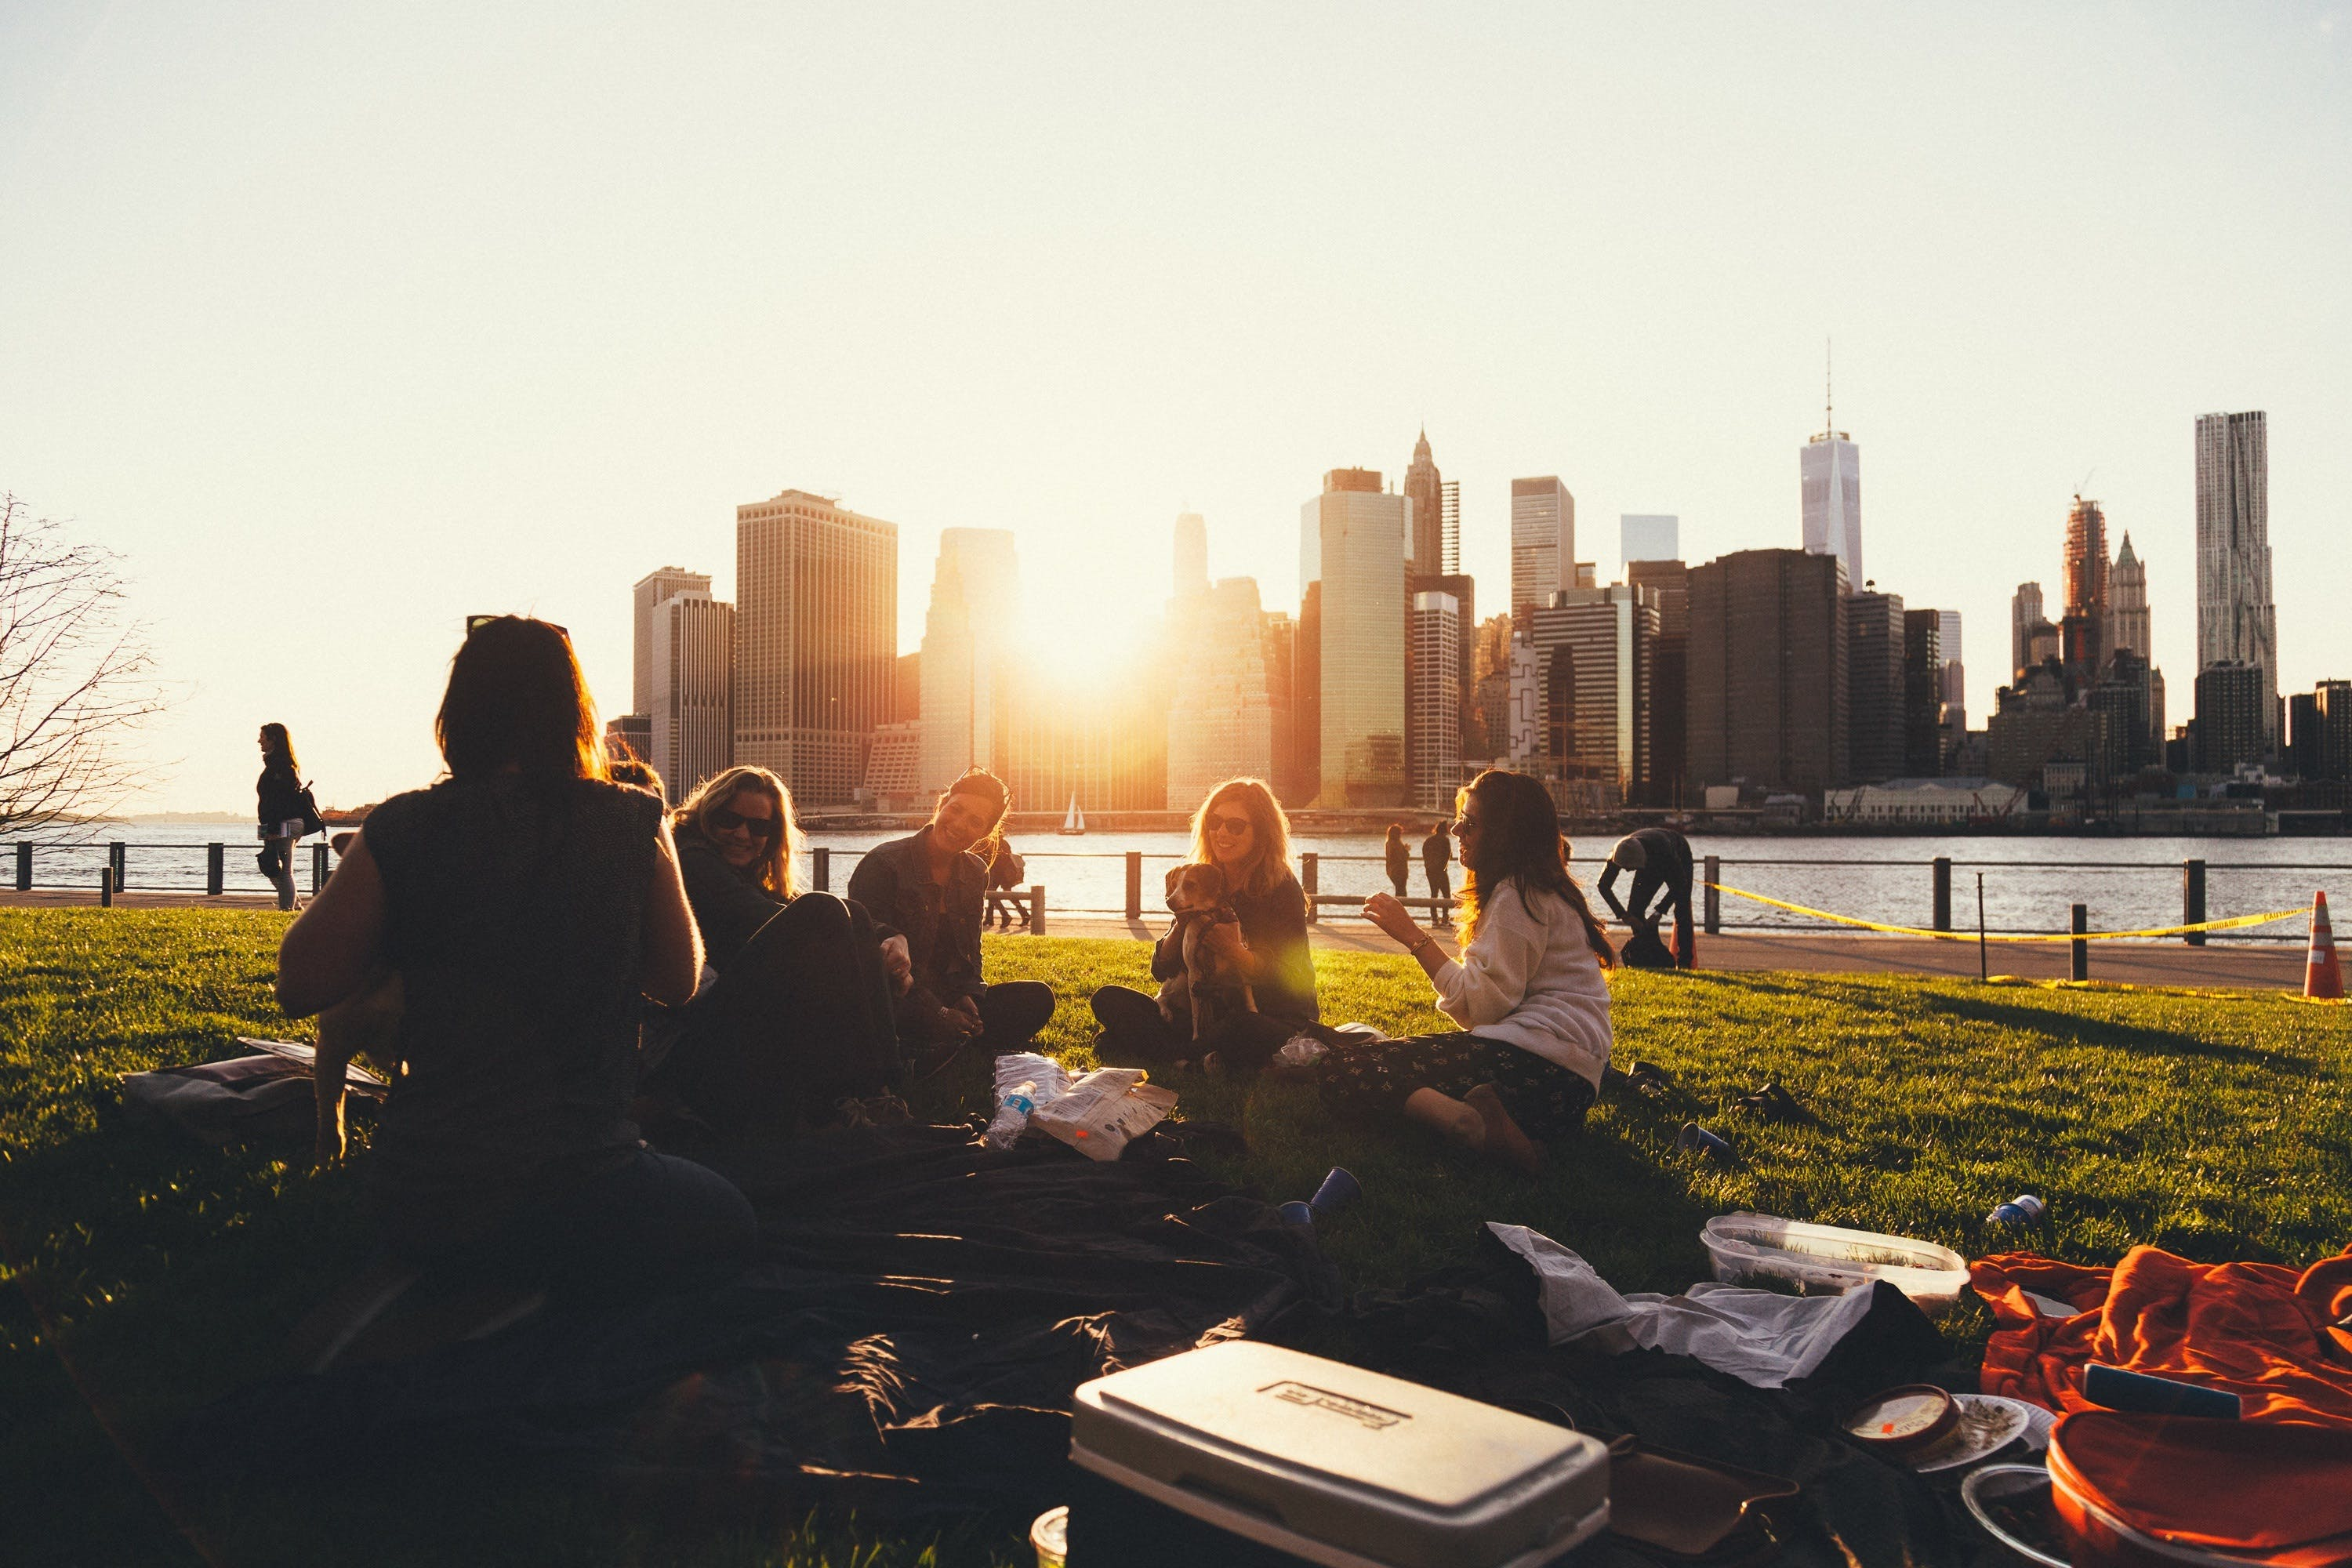 Free stock photo of picnic, friends, outdoors, social